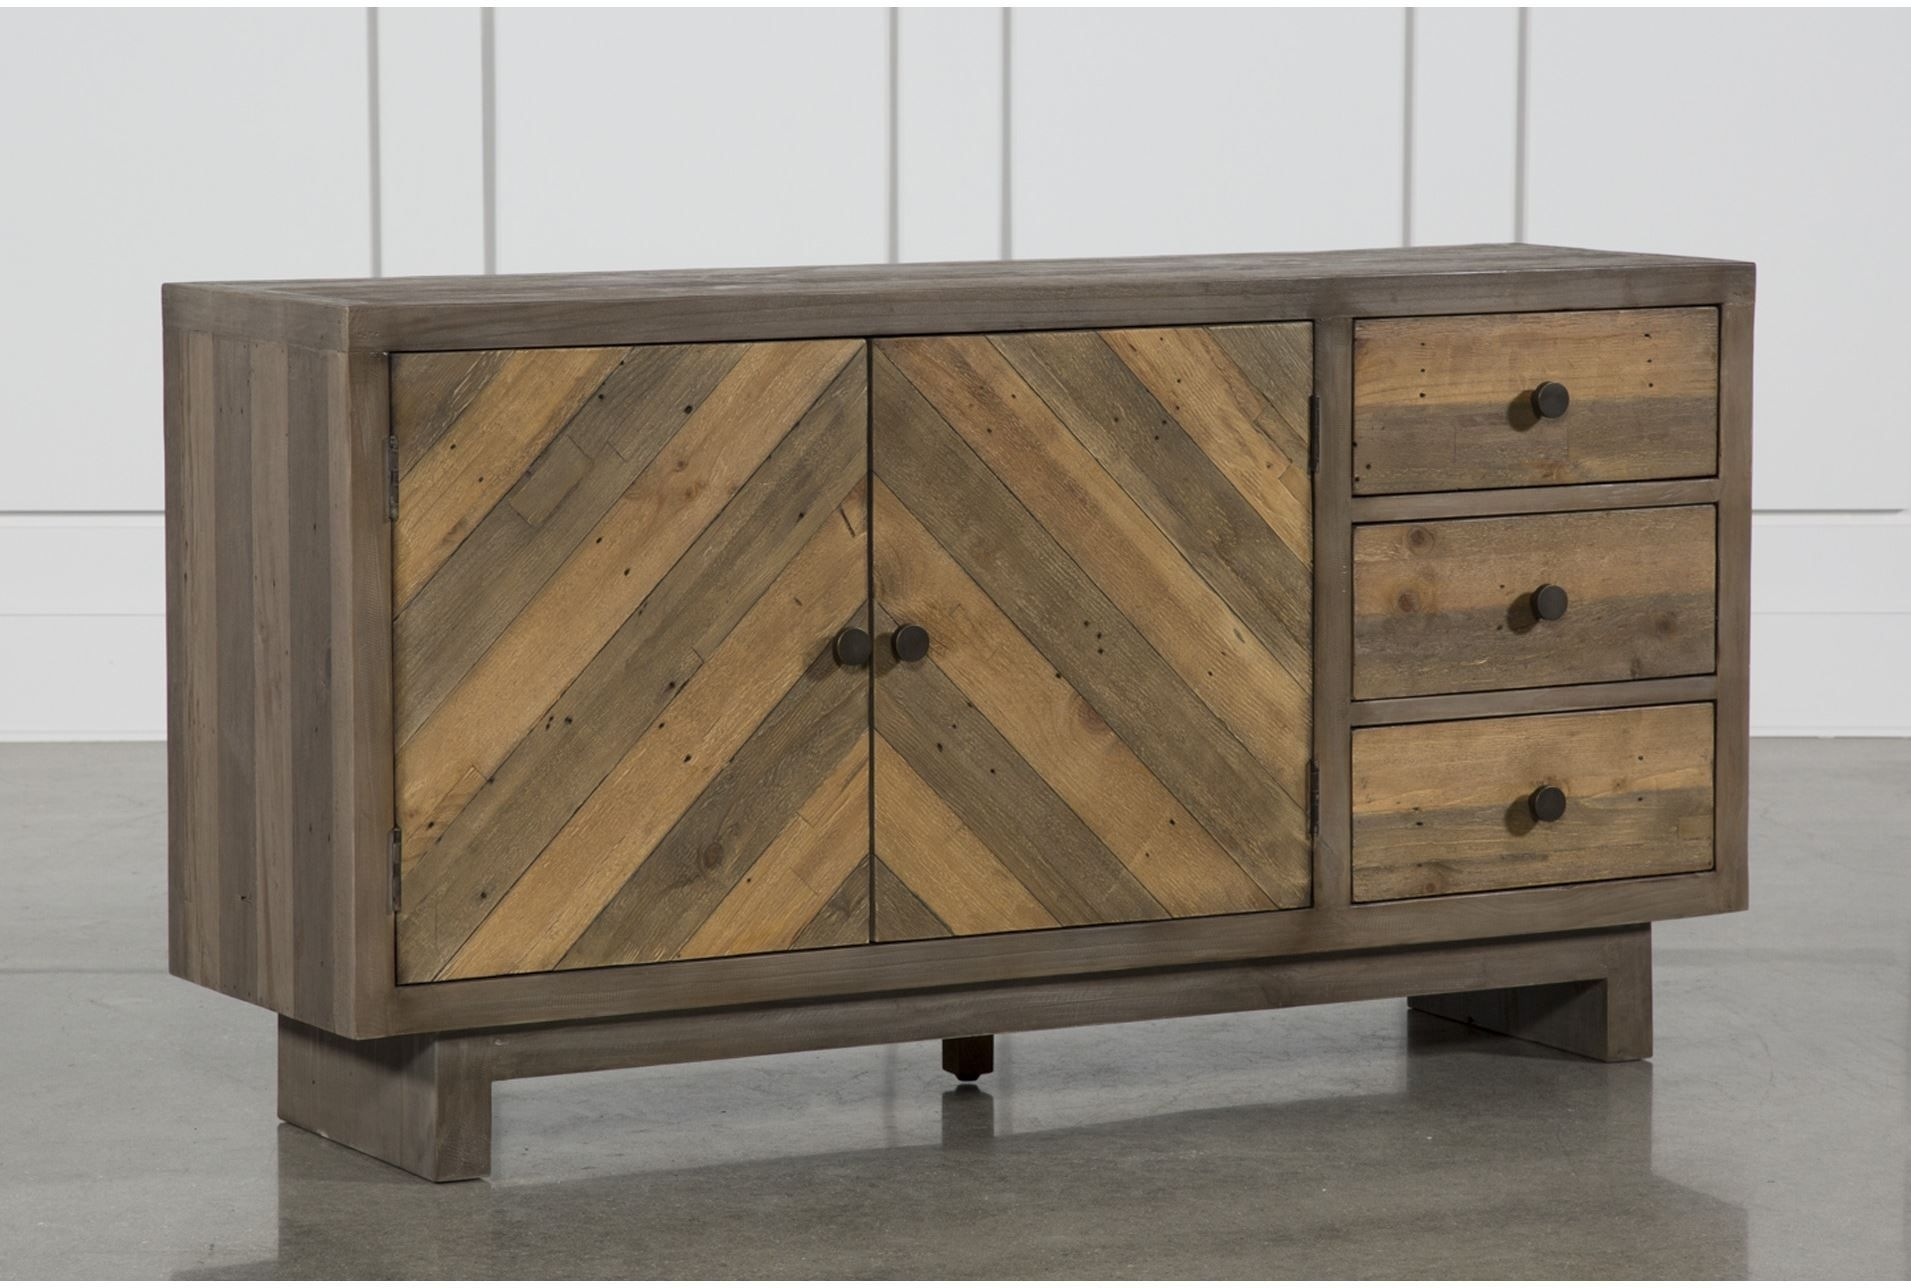 Otb Aged Pine 3-Drawer/2-Door Sideboard, Brown | Pinterest | Products throughout Mid Burnt Oak 71 Inch Sideboards (Image 14 of 30)